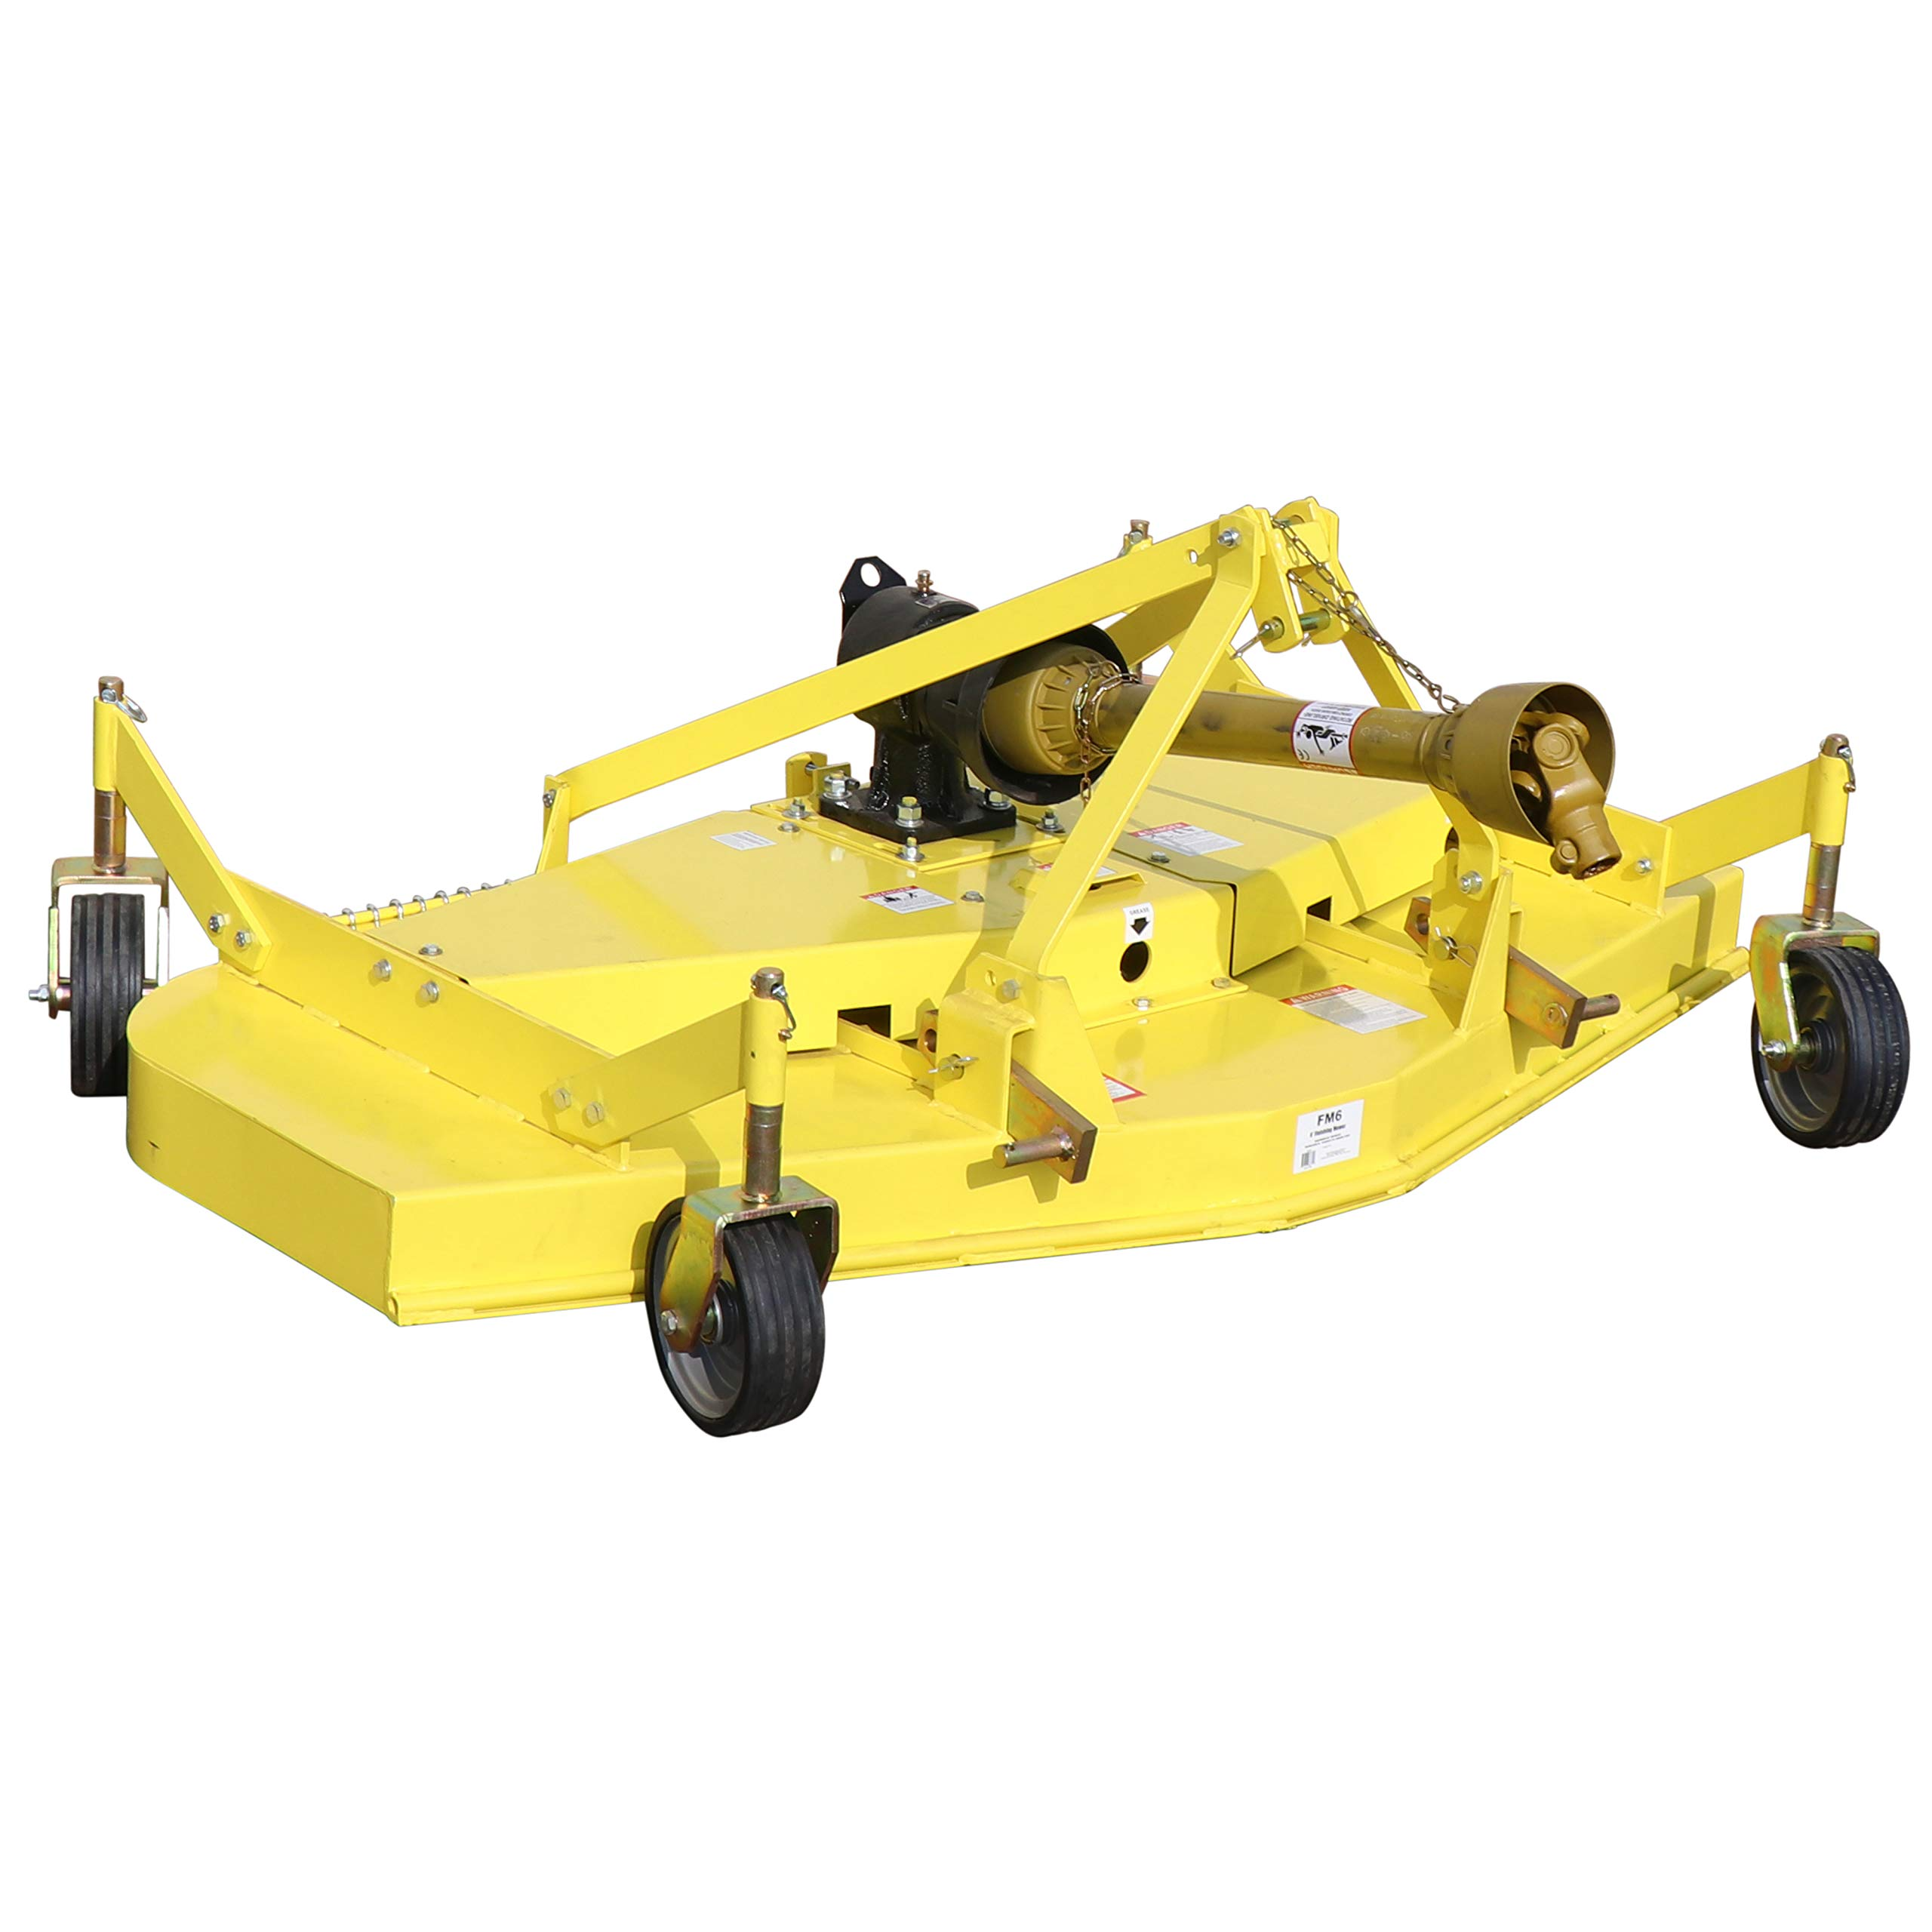 Titan Attachments Finishing Mower | Cat 1 3-Point | 6' by Titan Distributors Inc.